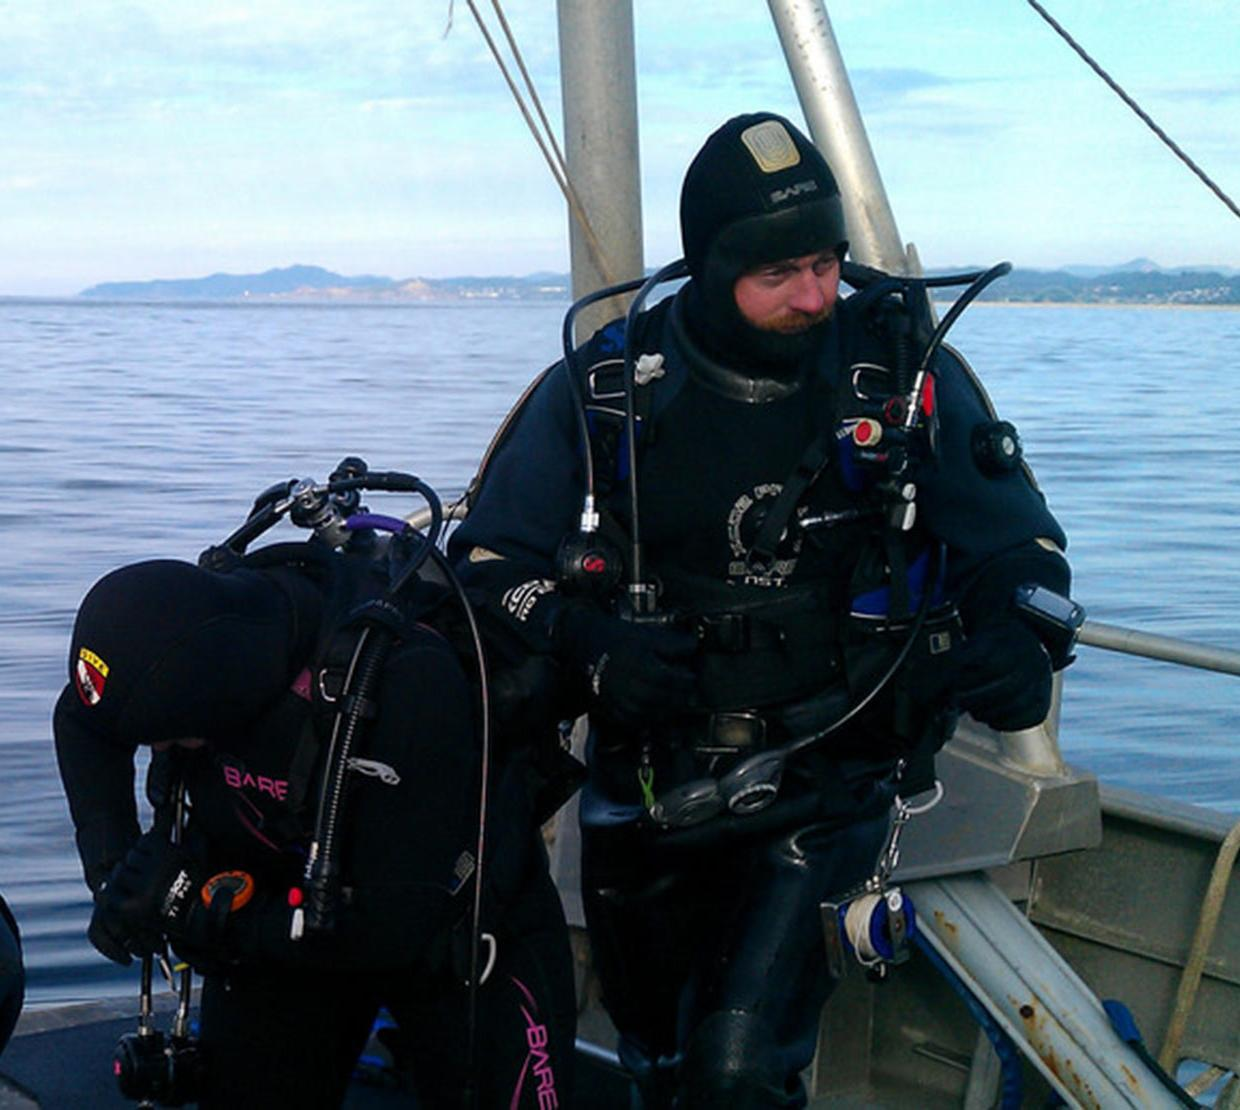 Scuba divers standing on edge of boat on sea